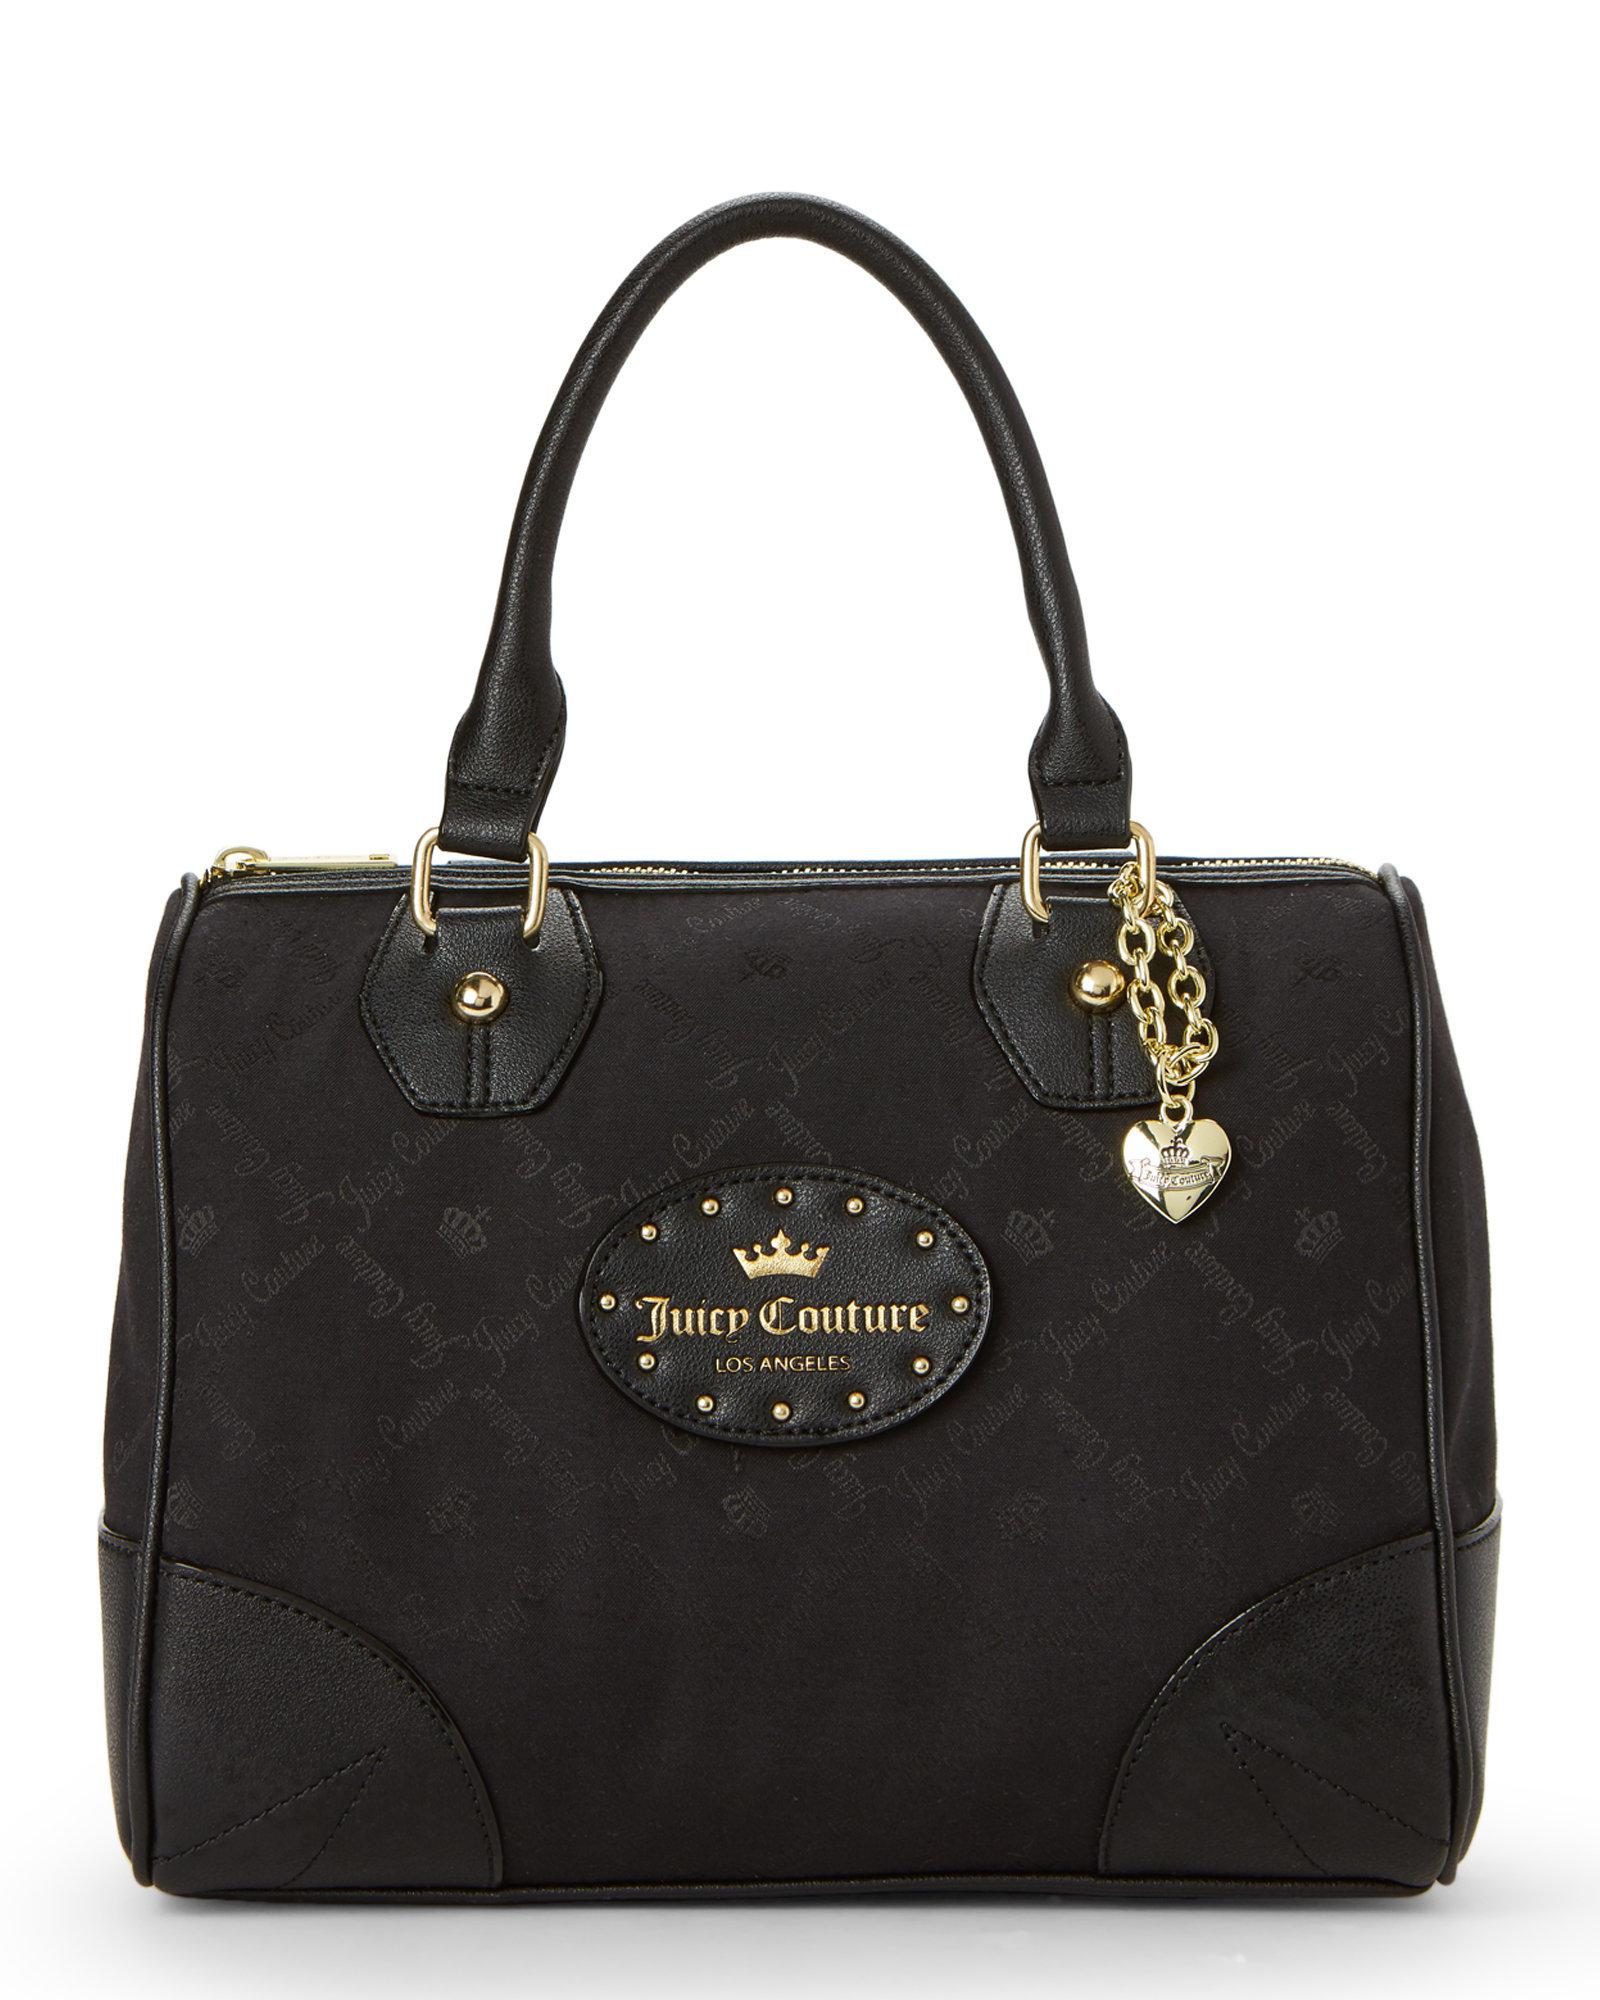 3708ff4fc Juicy Couture Black Yours Truly Satchel in Black - Lyst